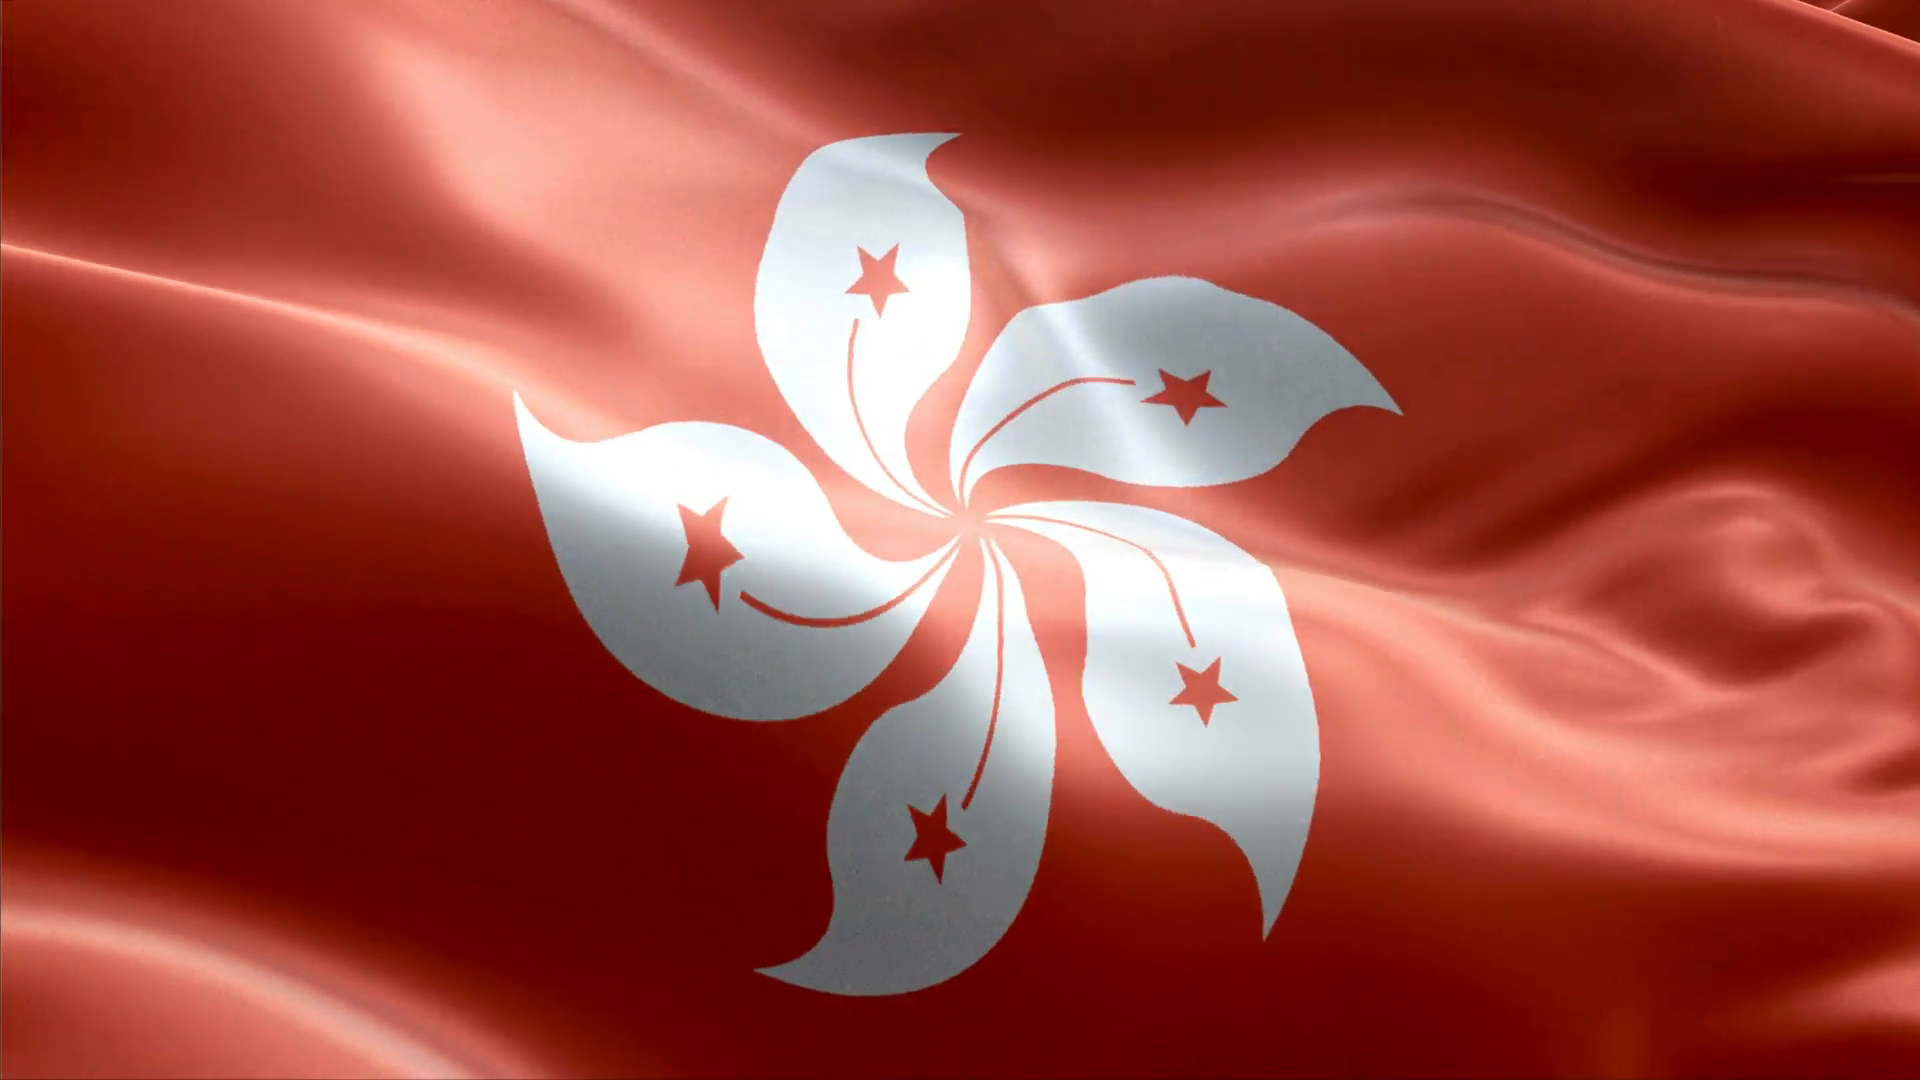 Country Flag Hong Kong Motion Background   Storyblocks Video 1920x1080